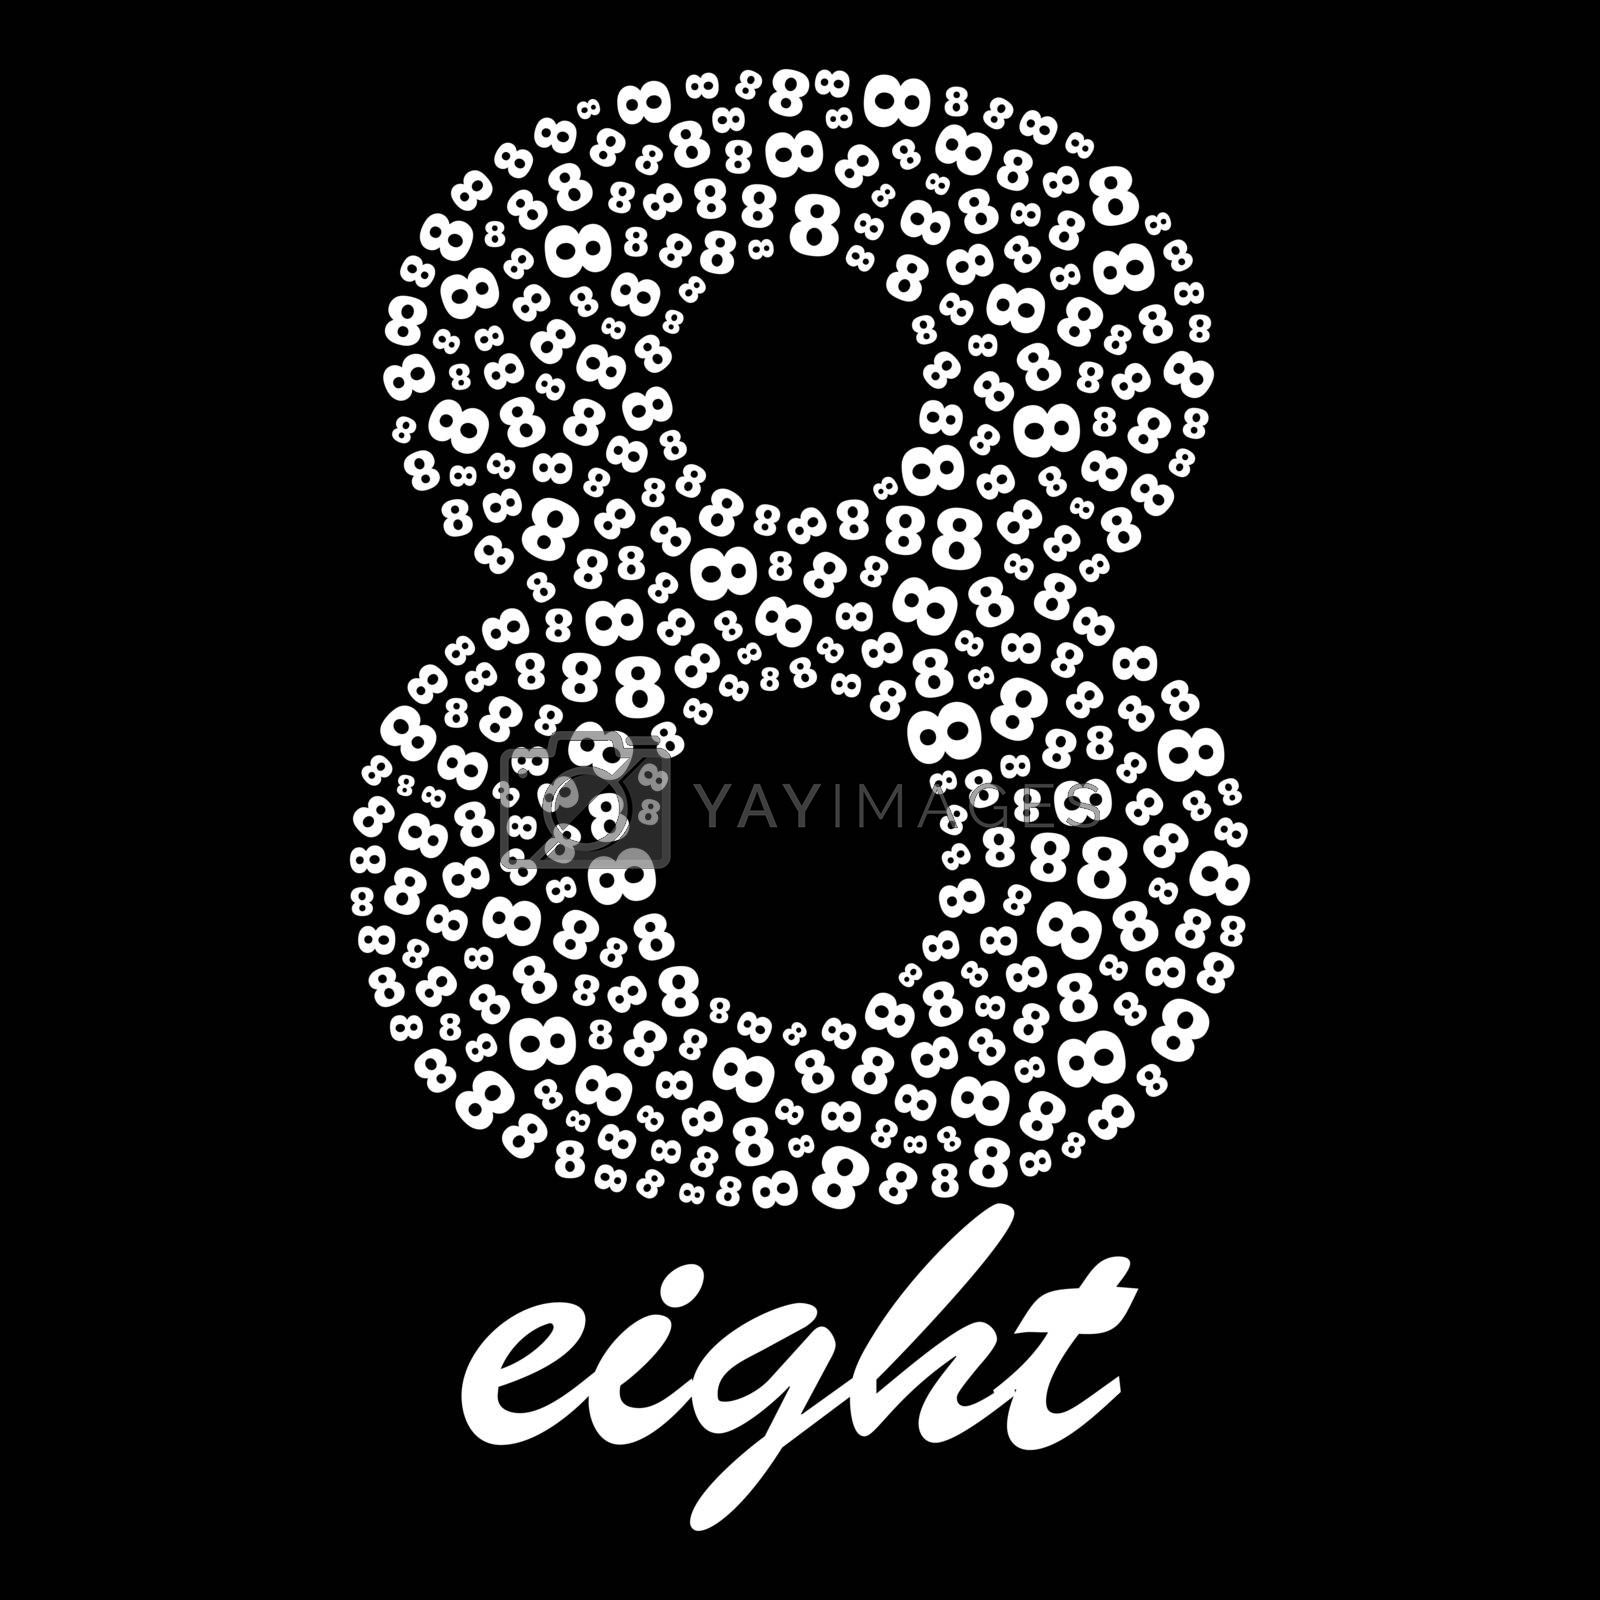 EIGHT.Usable for different design.